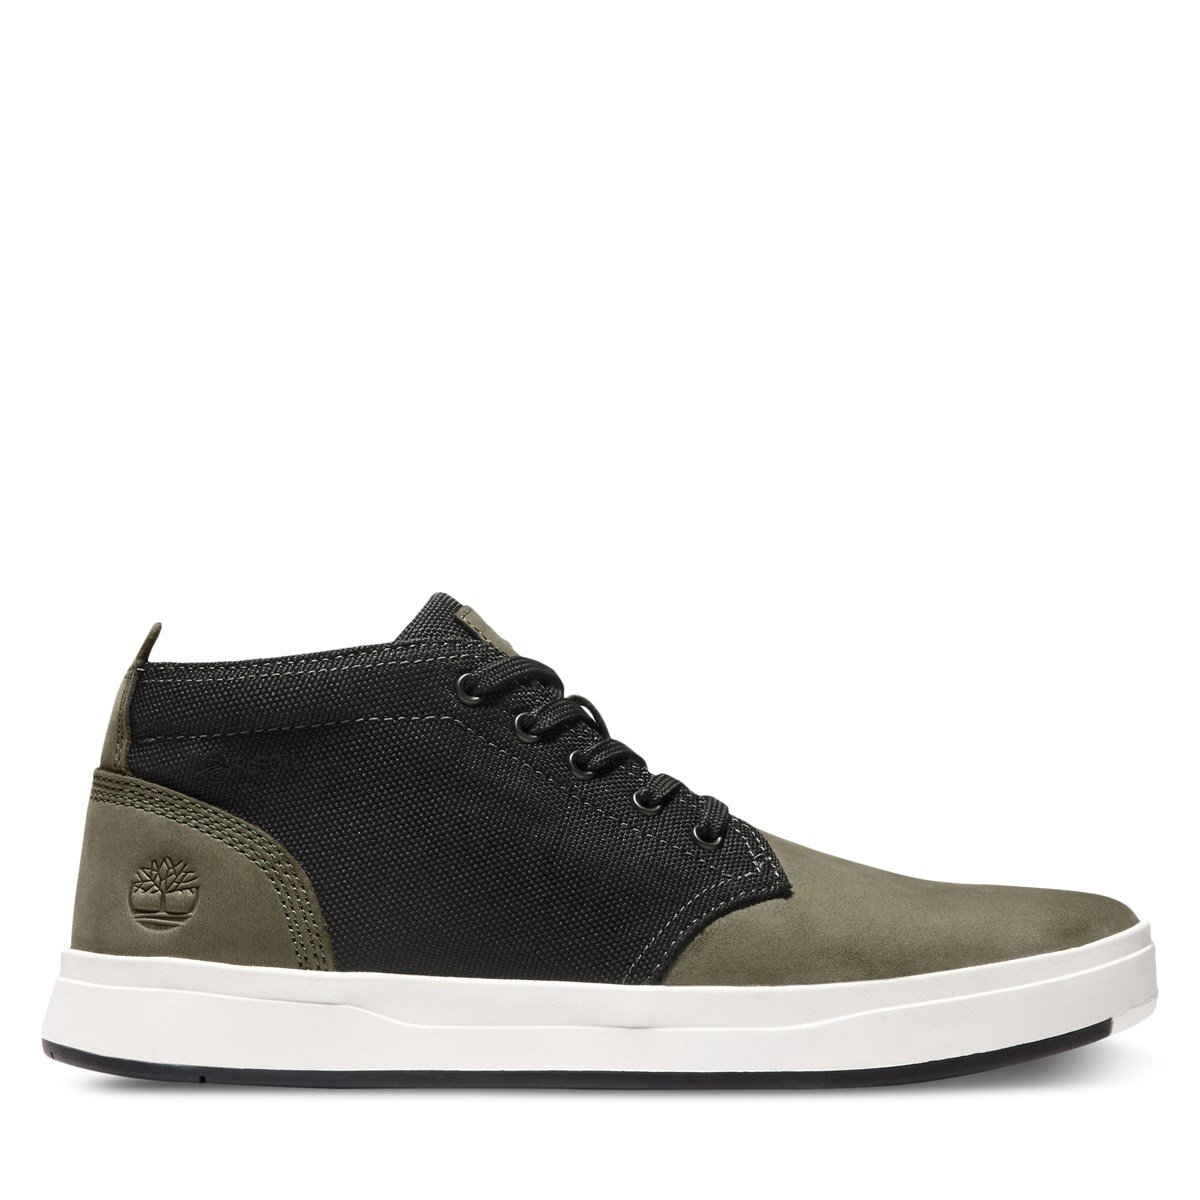 Men's Davis Square REBOTL Chukka Shoes in Green